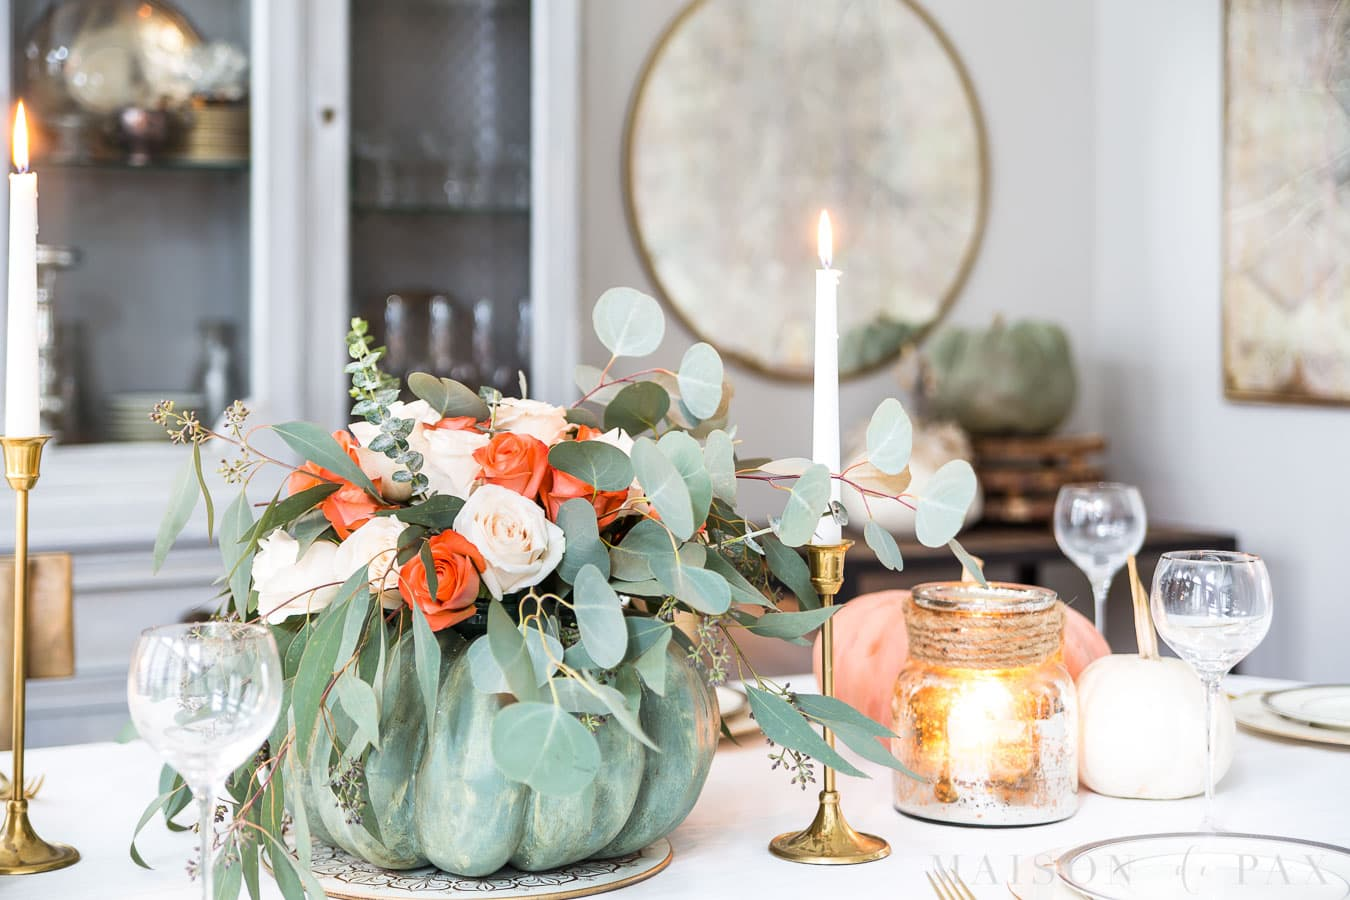 pumpkin with roses and eucalyptus, candles, and china creates an elegant Thanksgiving table.